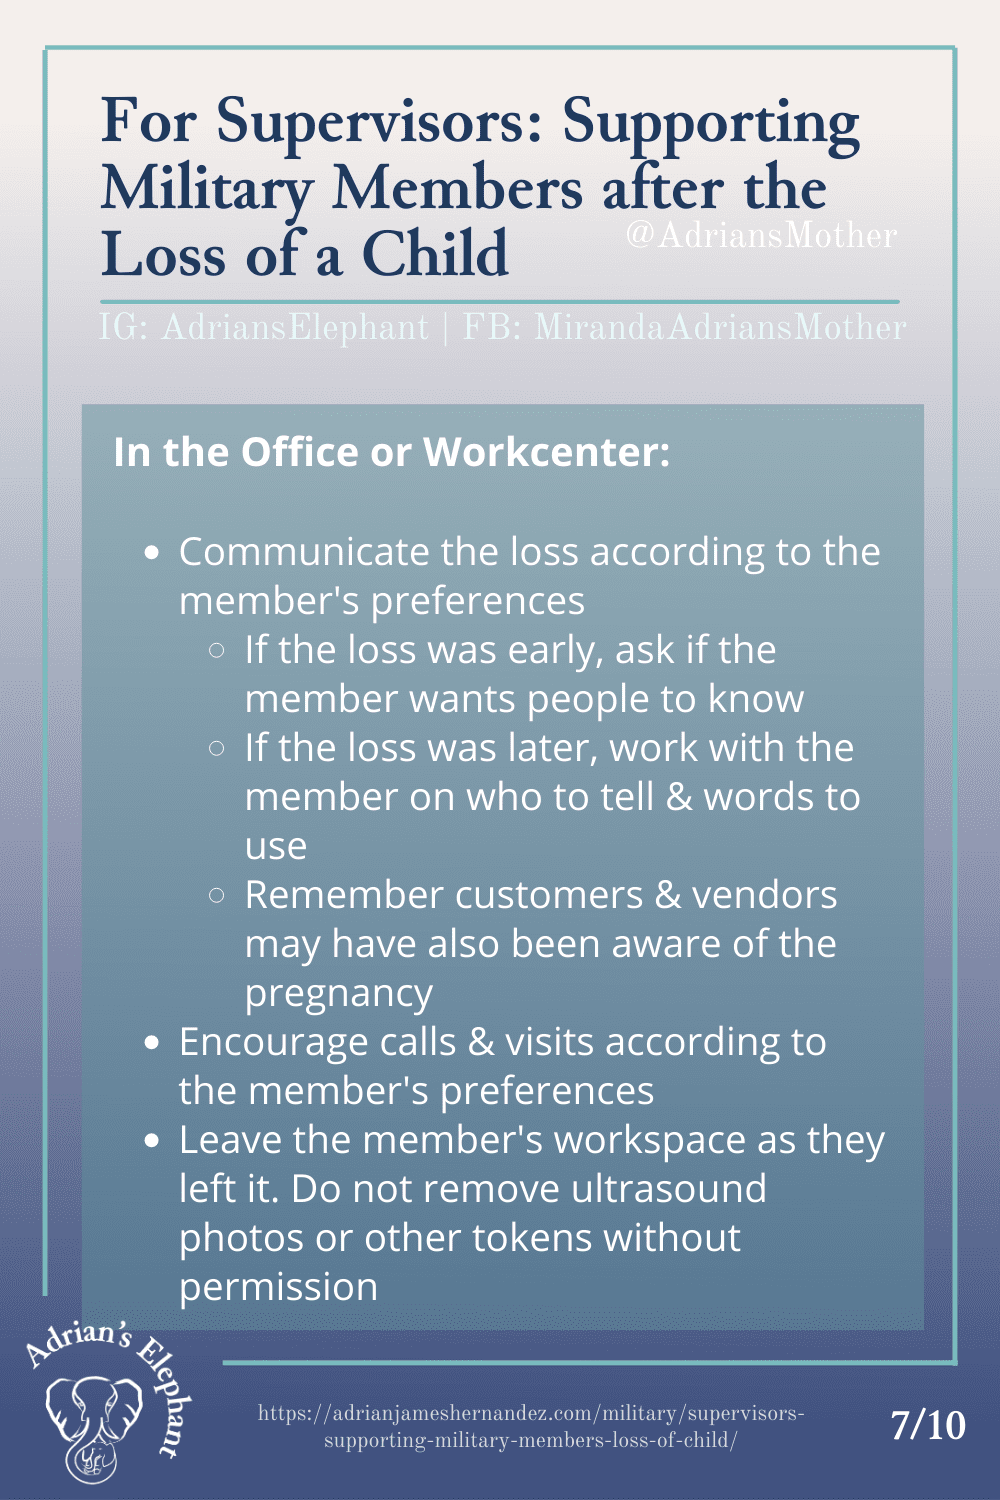 For Supervisors: Supporting Military Members after the Loss of a Child - In the Office or Workcenter: - Communicate the loss according to the member's preferences --- If the loss was early, ask if the member wants people to know --- If the loss was later, work with the member on who to tell & words to use --- Remember customers & vendors may have also been aware of the pregnancy - Encourage calls & visits according to the member's preferences - Leave the member's workspace as they left it. Do not remove ultrasound photos or other tokens without permission (7/10)